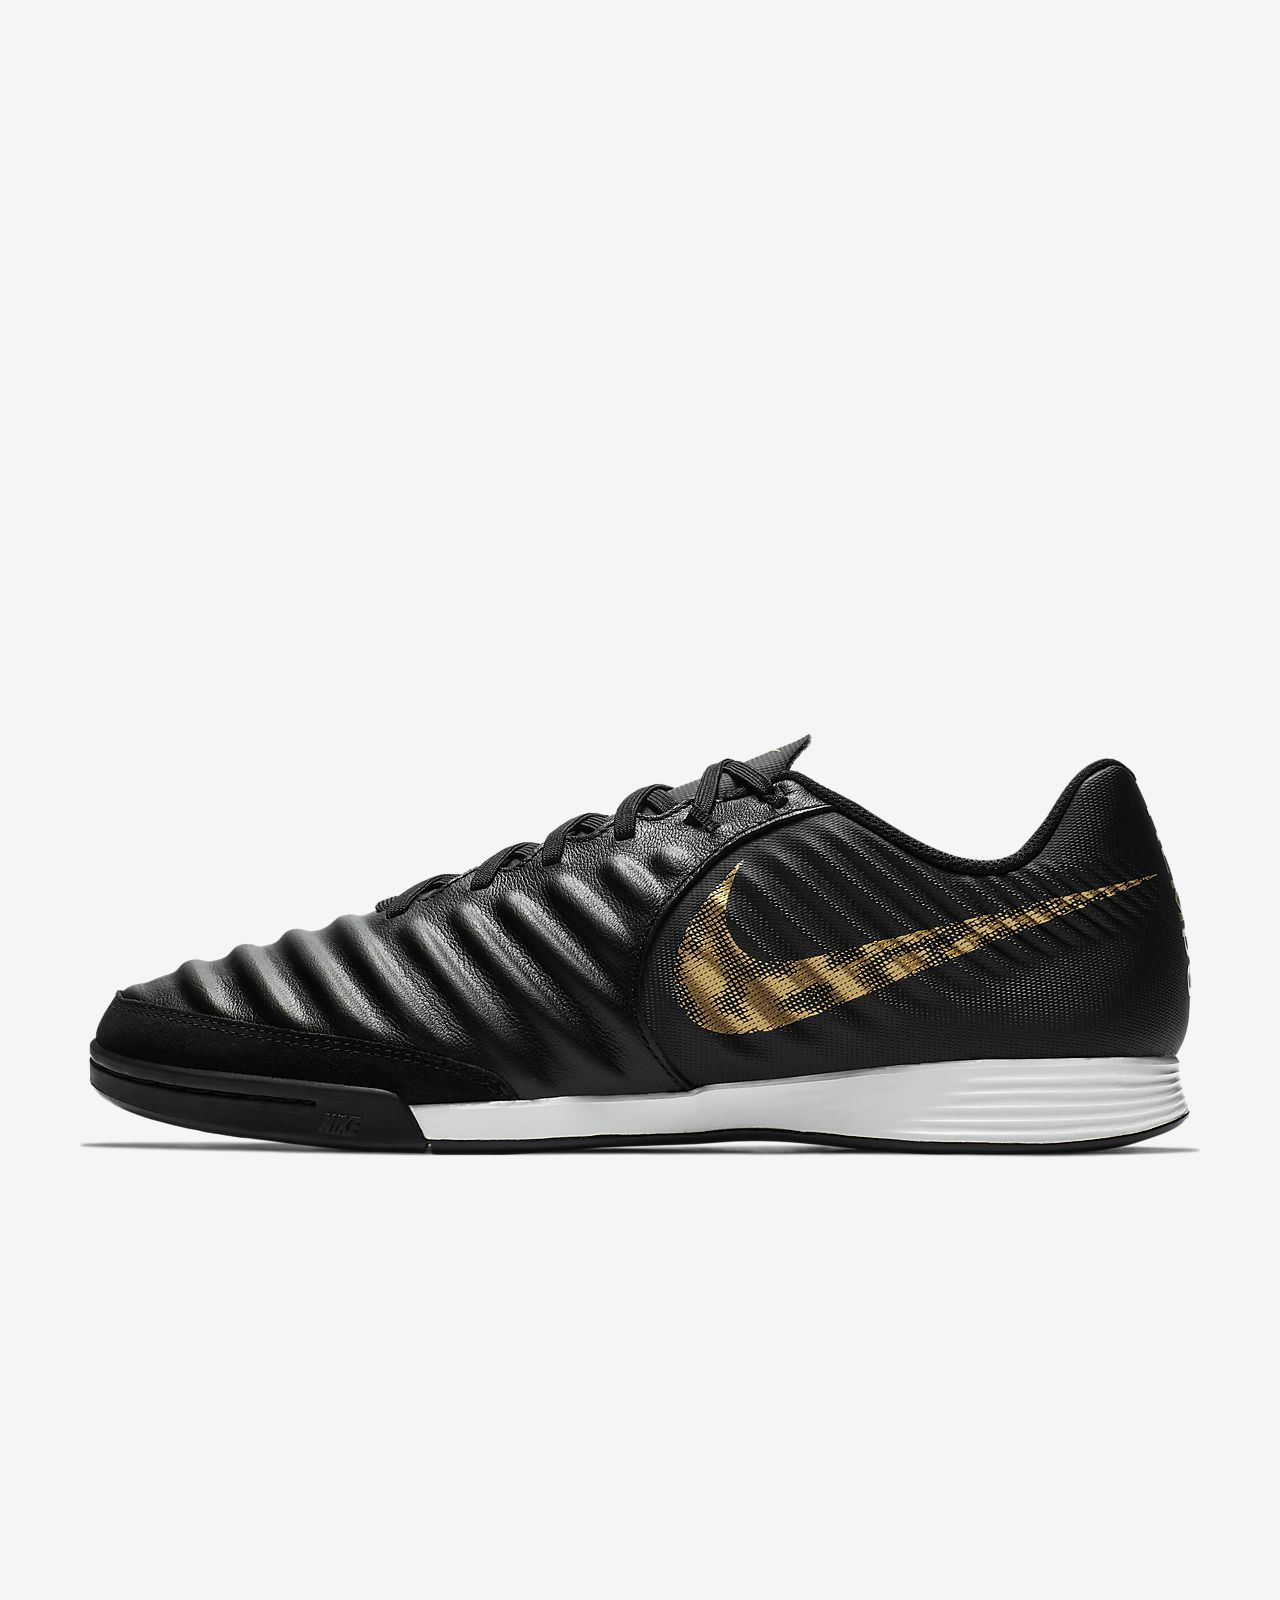 new products 0938f 92980 Indoor Court Football Boot. Nike LegendX 7 Academy IC